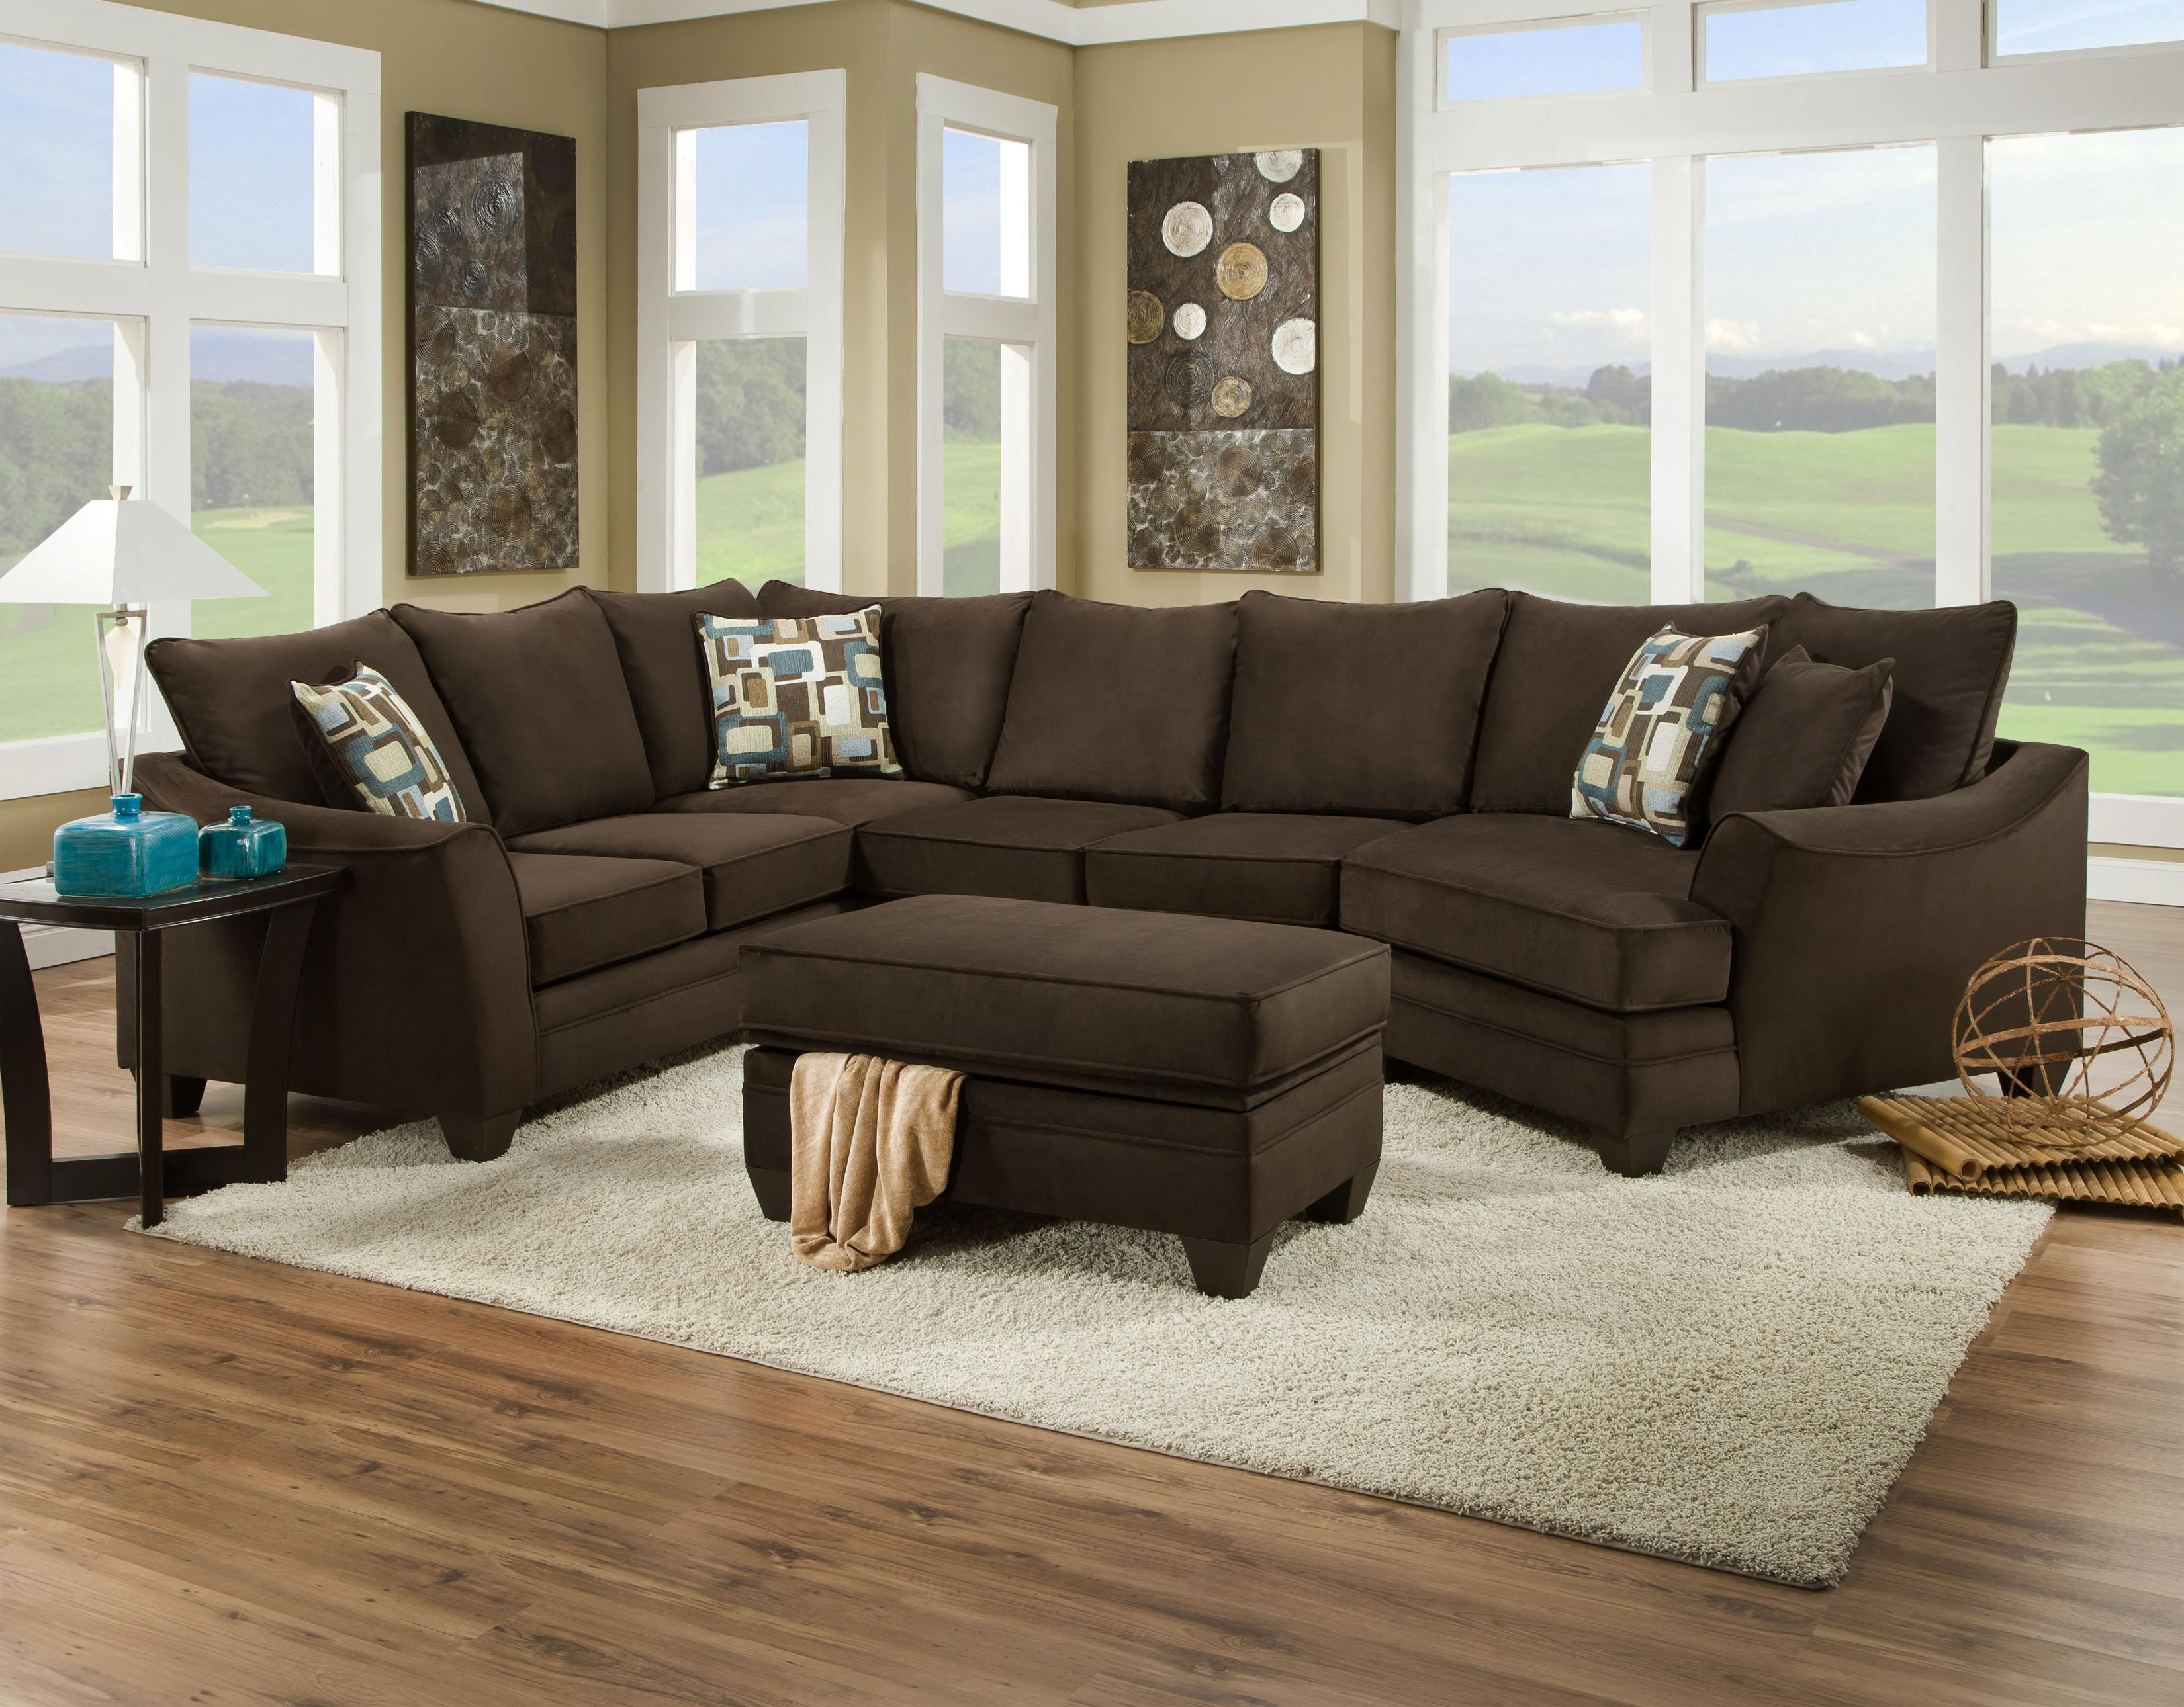 cuddler sofa american sectional number that item seats side products furniture with left